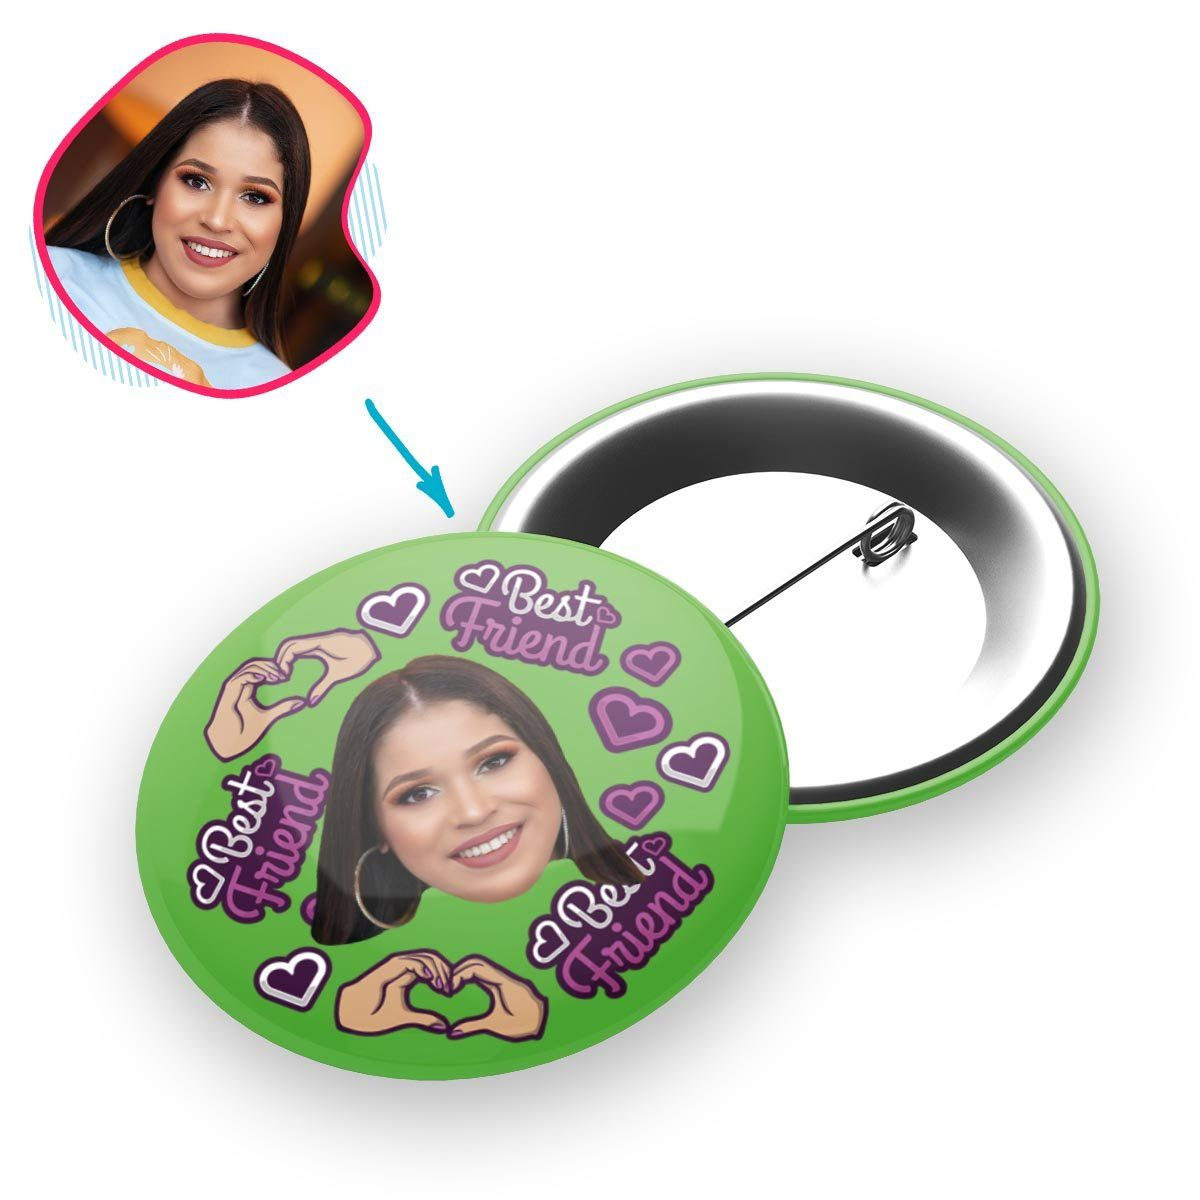 green BFF for Her pin personalized with photo of face printed on it